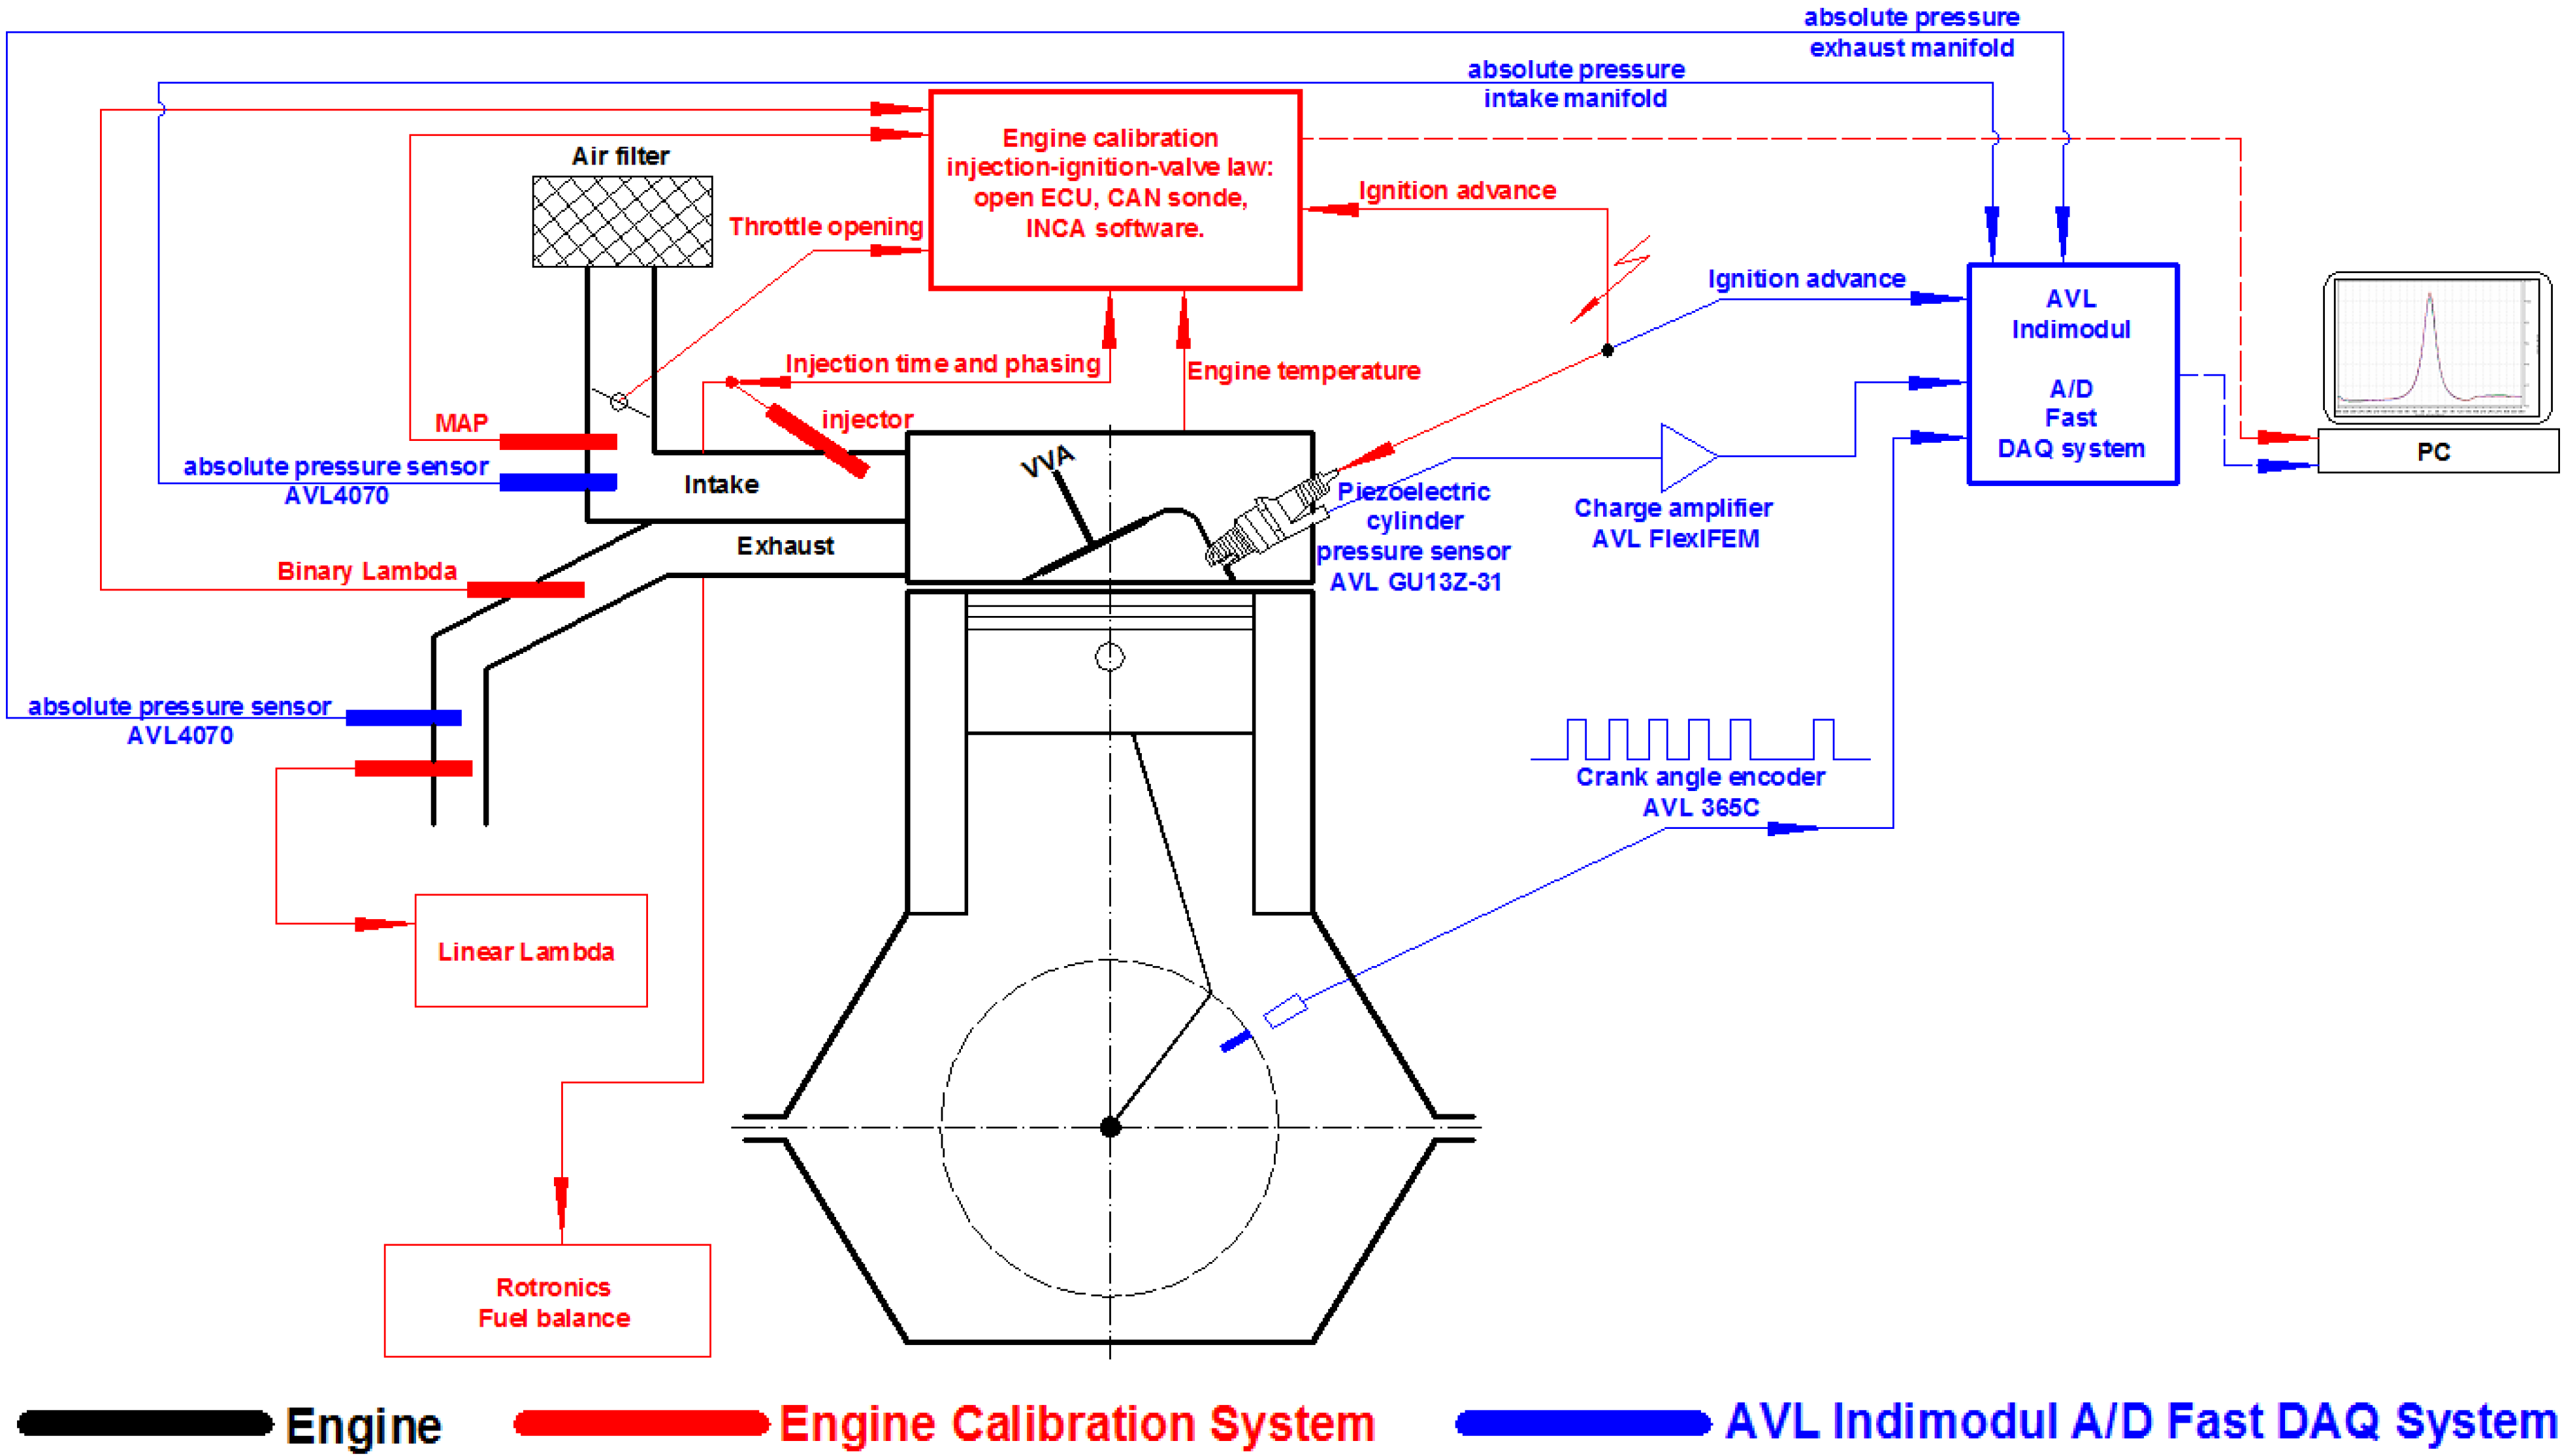 Energies | Free Full-Text | Idle Operation with Low Intake ... on e30 325i wiring diagram, mercruiser schematic diagram, suzuki schematic diagram, ac schematic diagram, e34 ews ii diagram, e30 engine harness diagram, nissan schematic diagram, bmw plan view, automotive schematic diagram, sony schematic diagram, subaru schematic diagram, honda schematic diagram, schematic wiring diagram, bmw e28 fuse box wires, yamaha schematic diagram, stihl schematic diagram, samsung schematic diagram, bmw e36 wiring diagrams, harley davidson schematic diagram, mercedes schematic diagram,